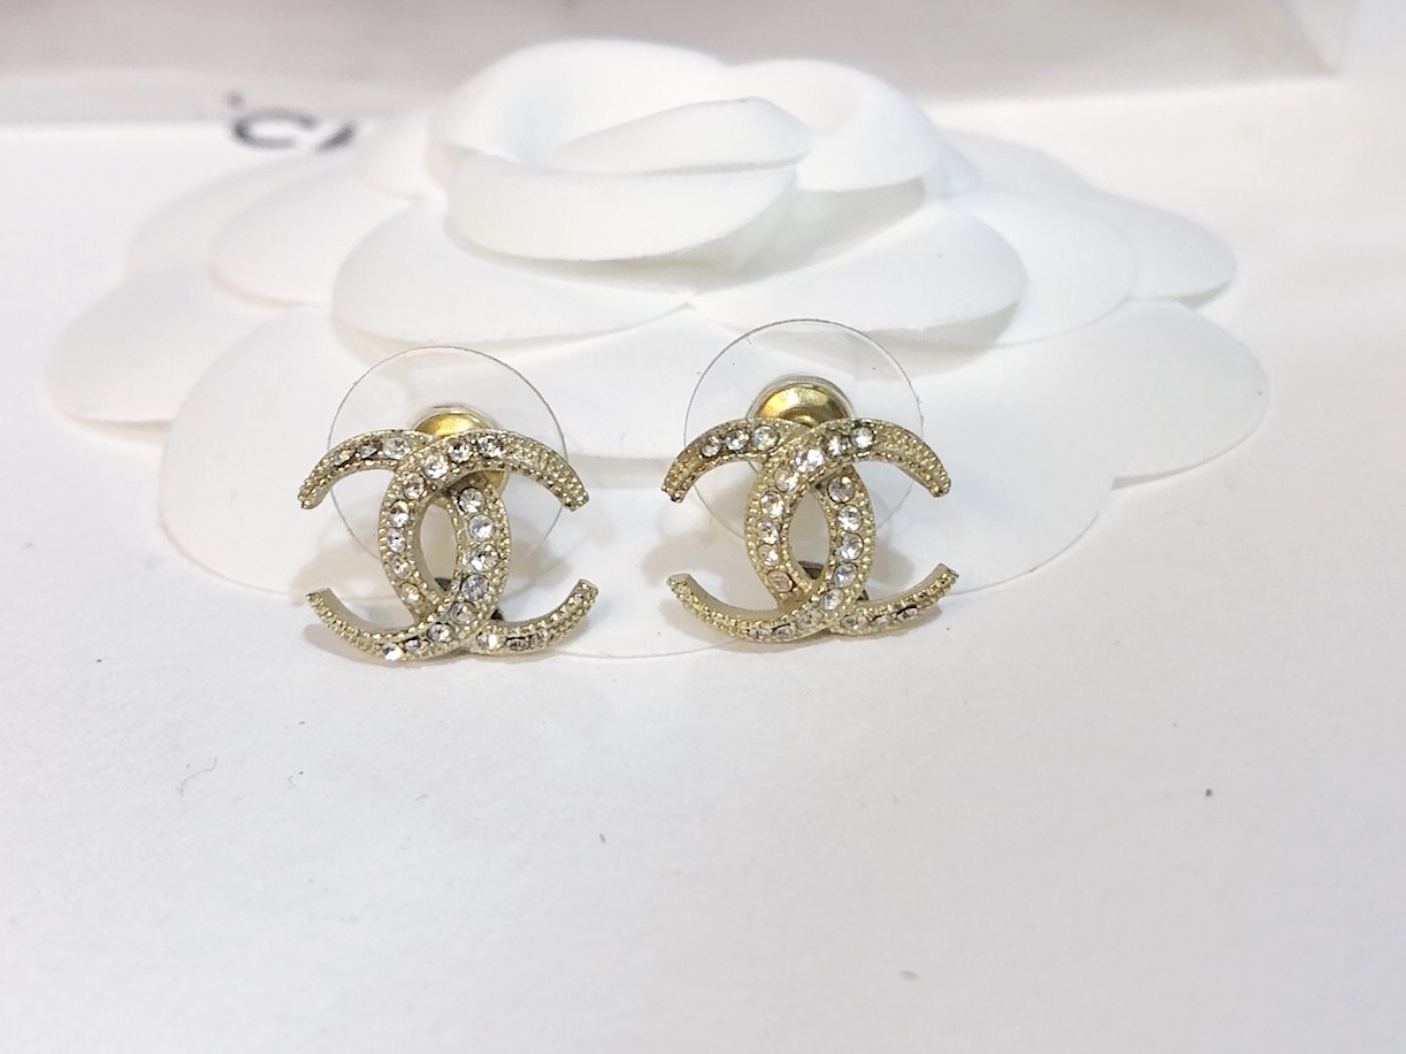 SALE!!! Authentic CHANEL CRESCENT MOON CRYSTAL CC Logo Stud Earrings Gold